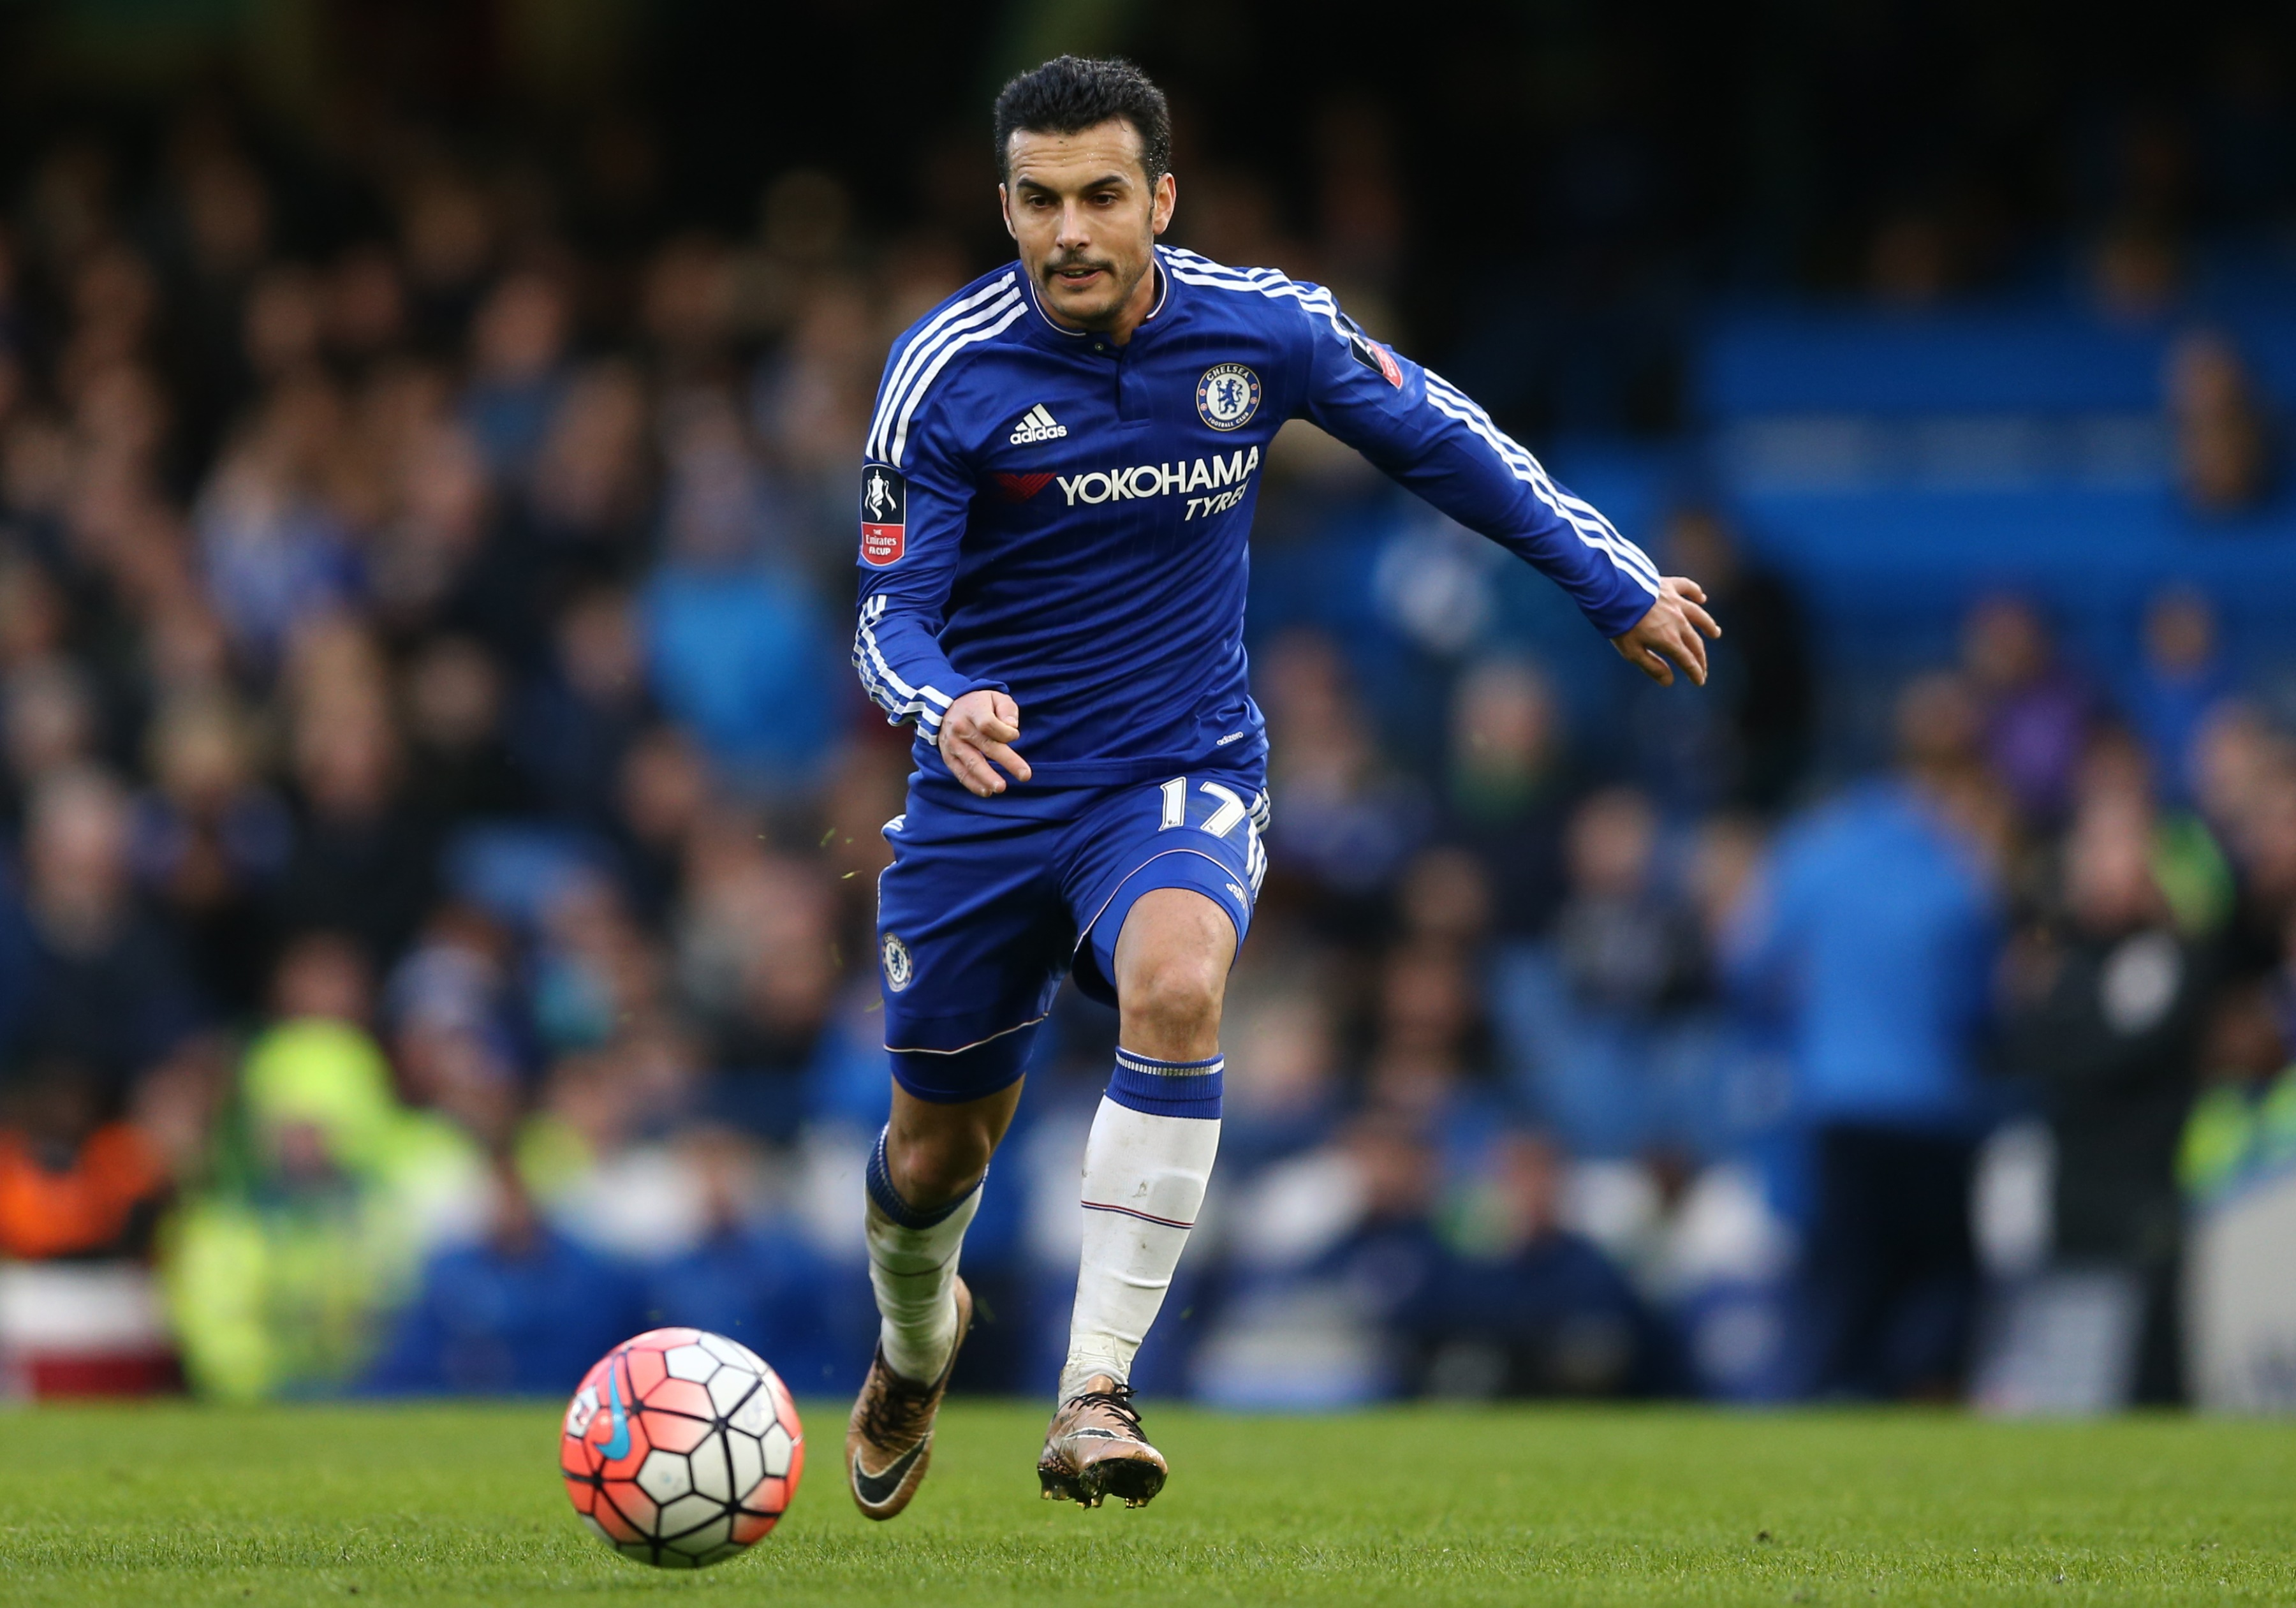 Chelsea live stream, West Brom live stream, West Brom Chelsea live stream, how to watch West Brom Chelsea, watch West Brom Chelsea mobile